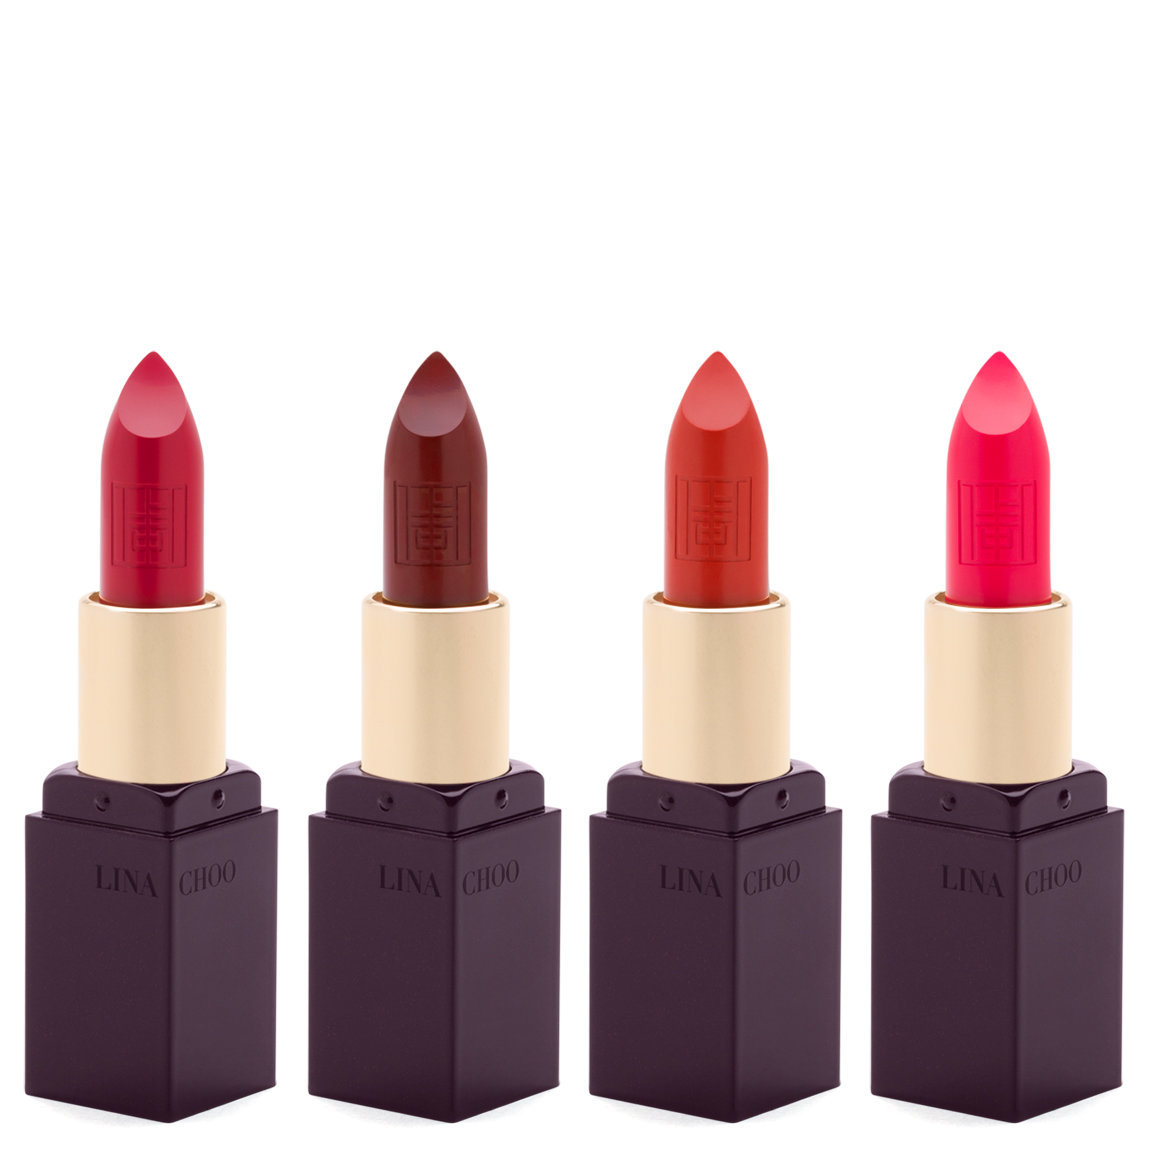 LINA CHOO The Great Artist Velvet Matte Mini Lipstick Set product smear.